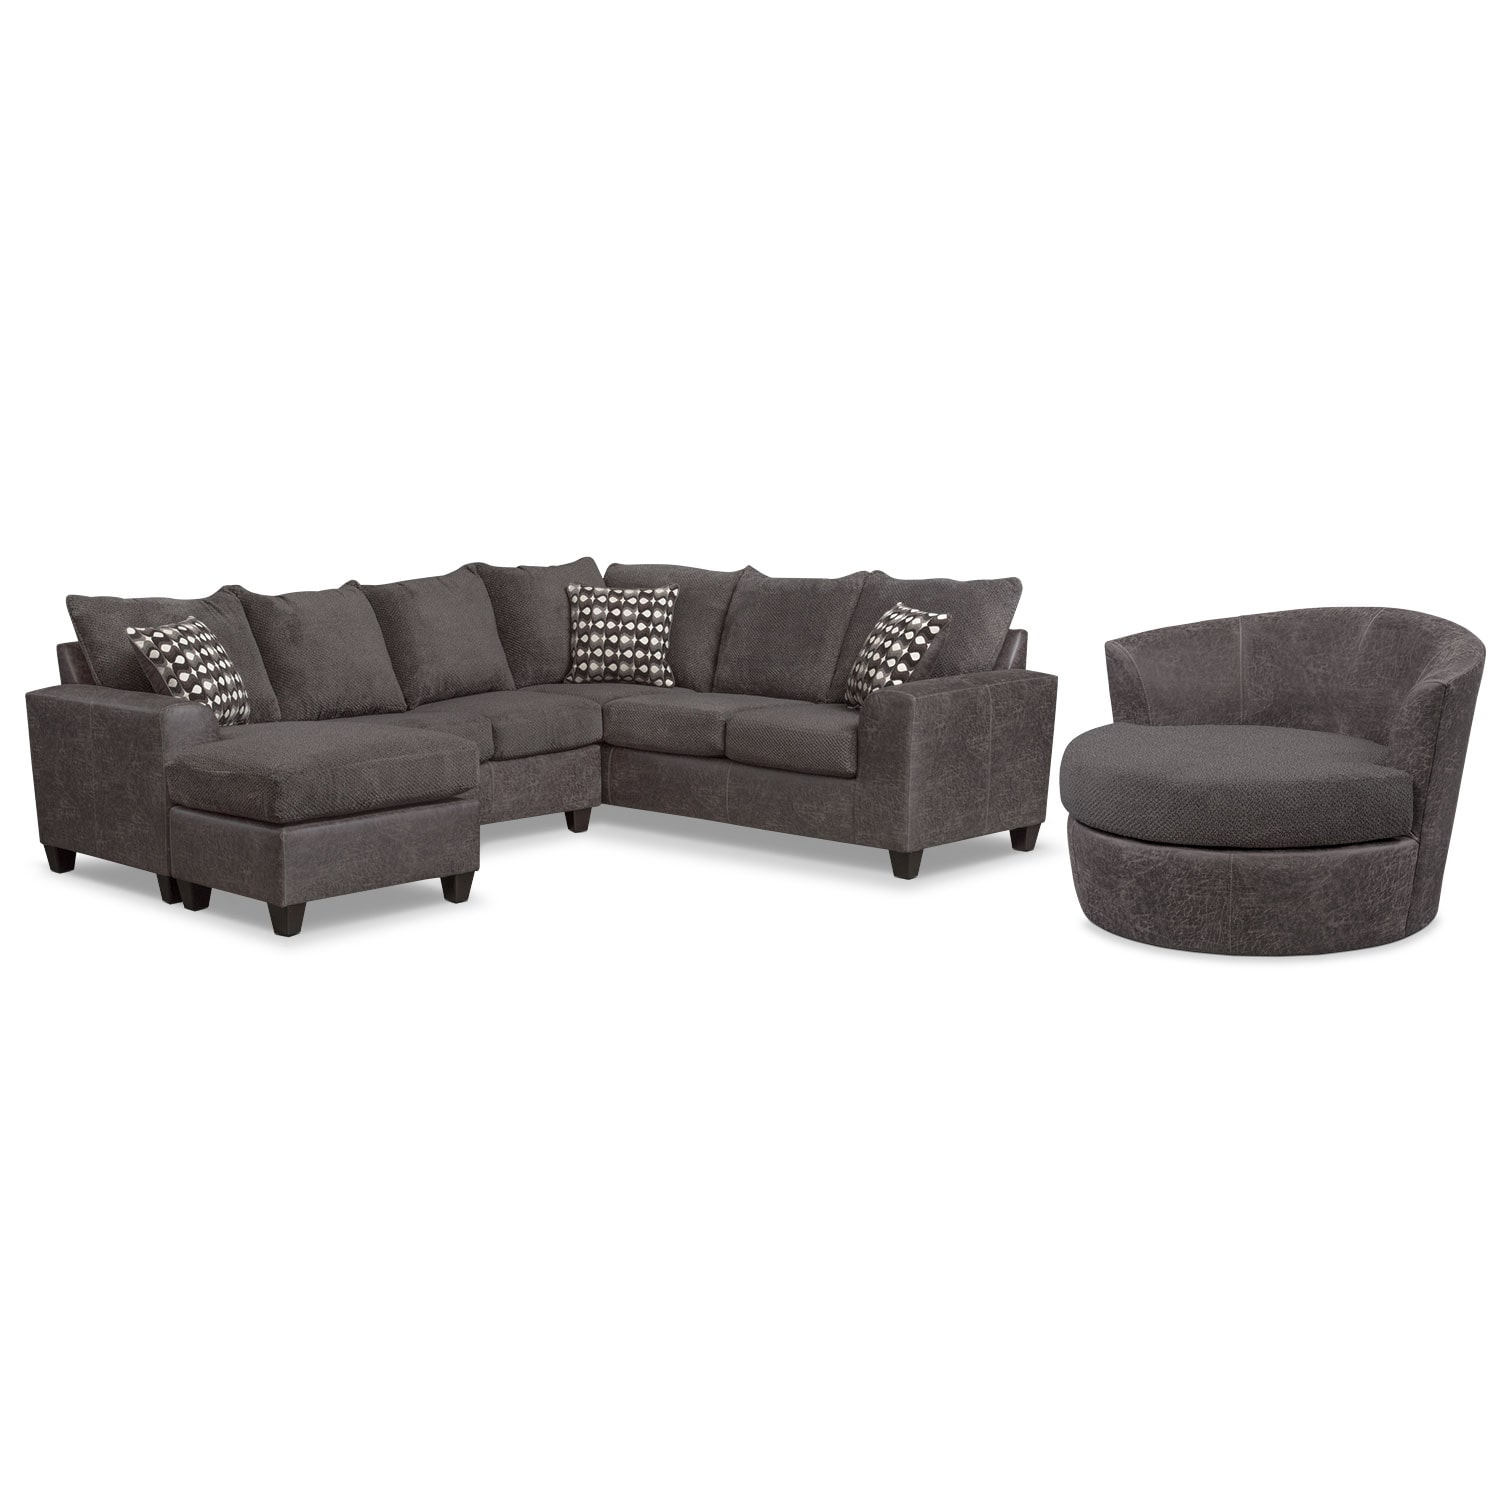 Living Room Furniture - Brando 3-Piece Sectional with Chaise and Swivel Chair Set - Smoke